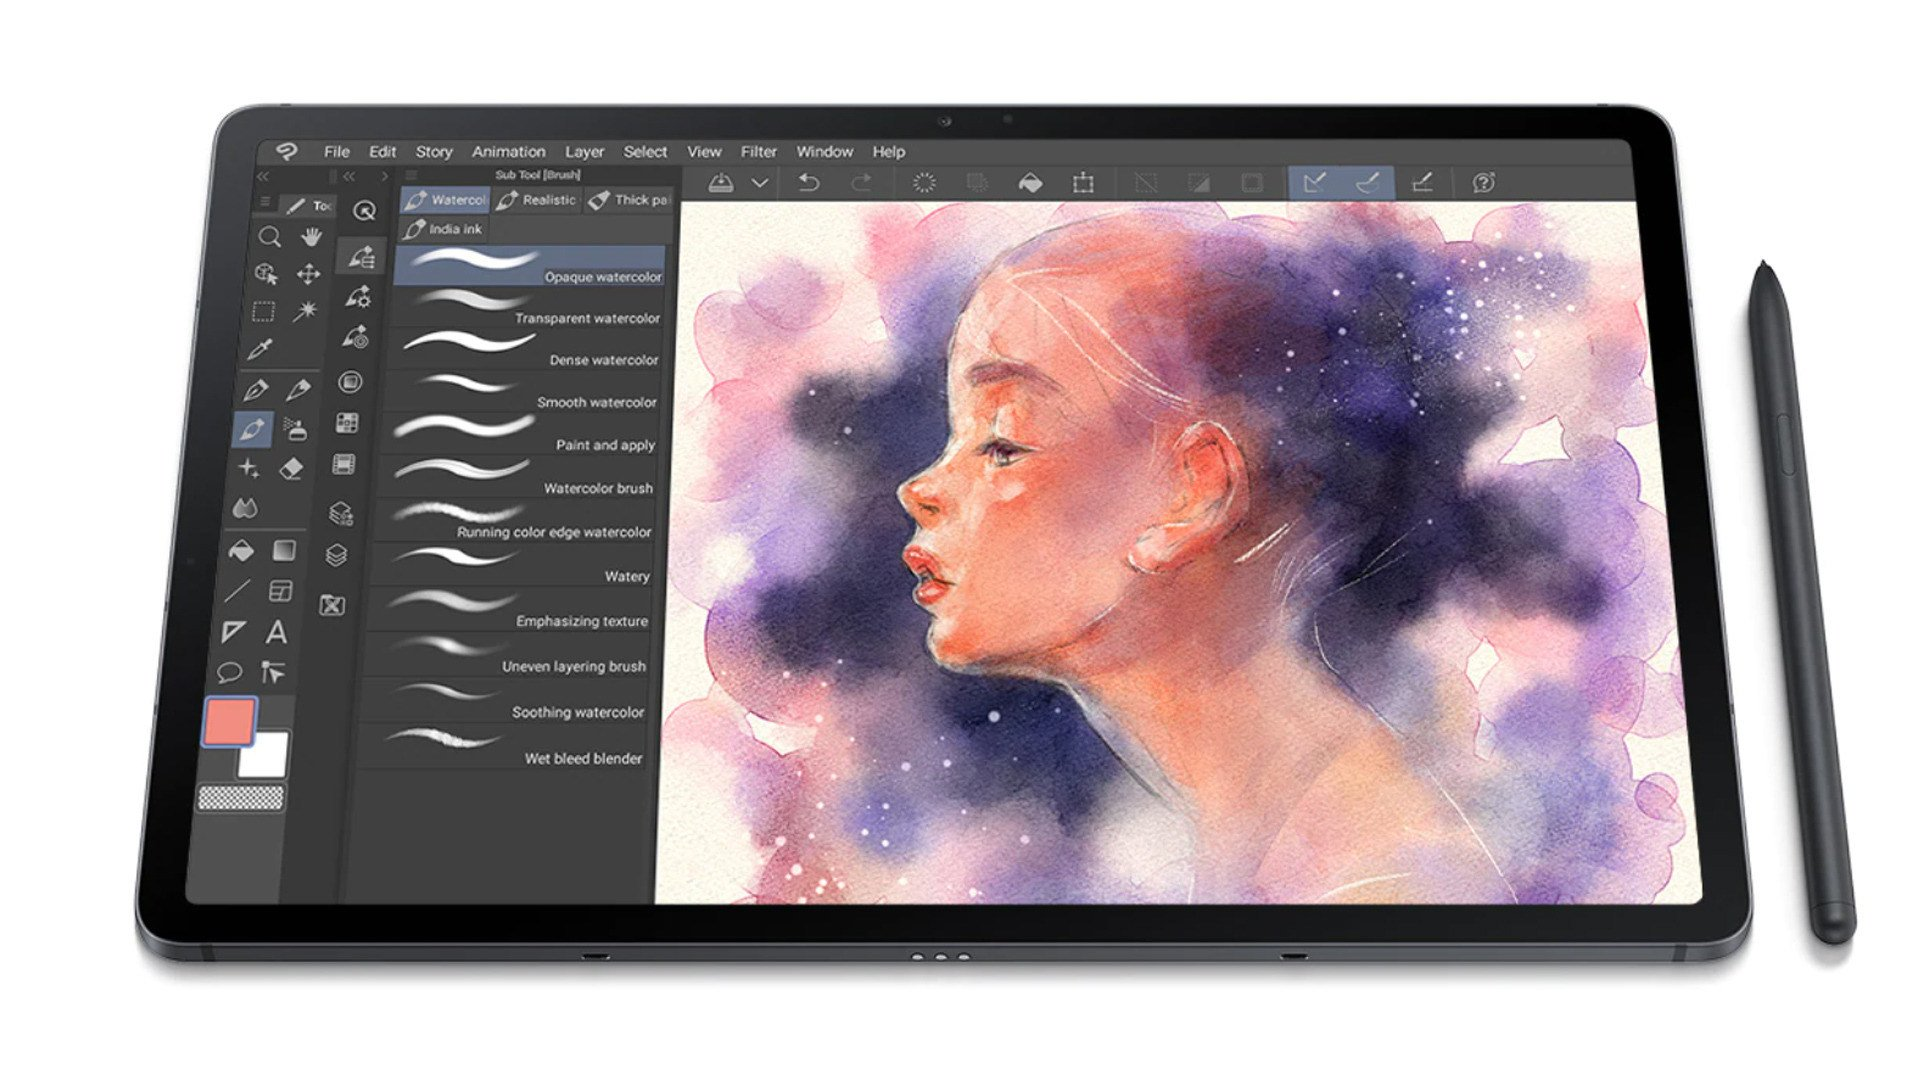 Tablet, Samsung, Galaxy, Stylus, Android 11, Stift, Galaxy Tab, S Pen, Samsung DeX, Samsung Galaxy Tab S7 FE, Samsung Galaxy Tab S7+ Lite